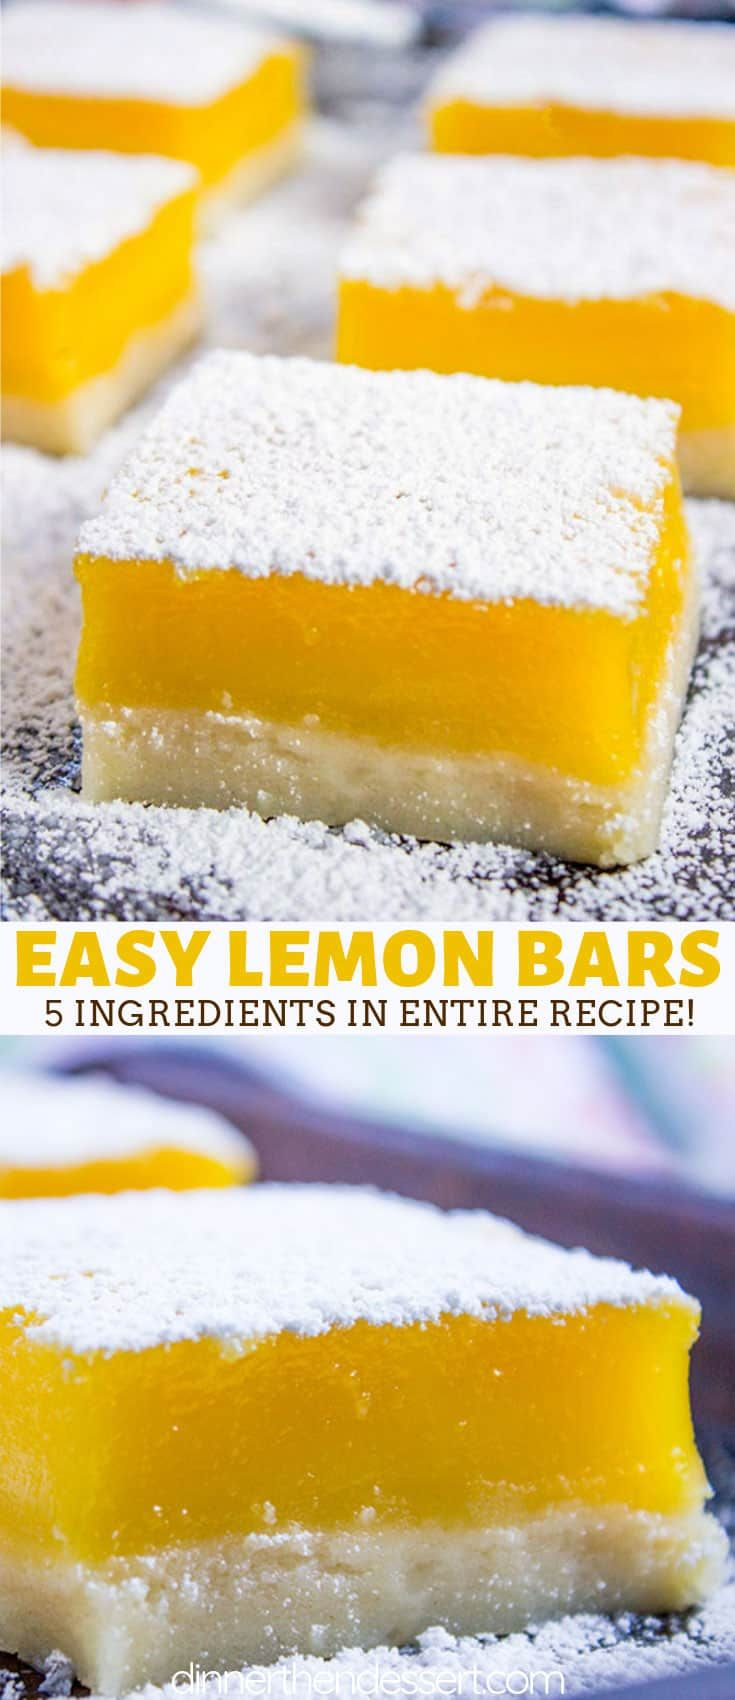 Easy Lemon Bars have a buttery shortbread crust, a tangy lemon curd filling and just 5 ingredients